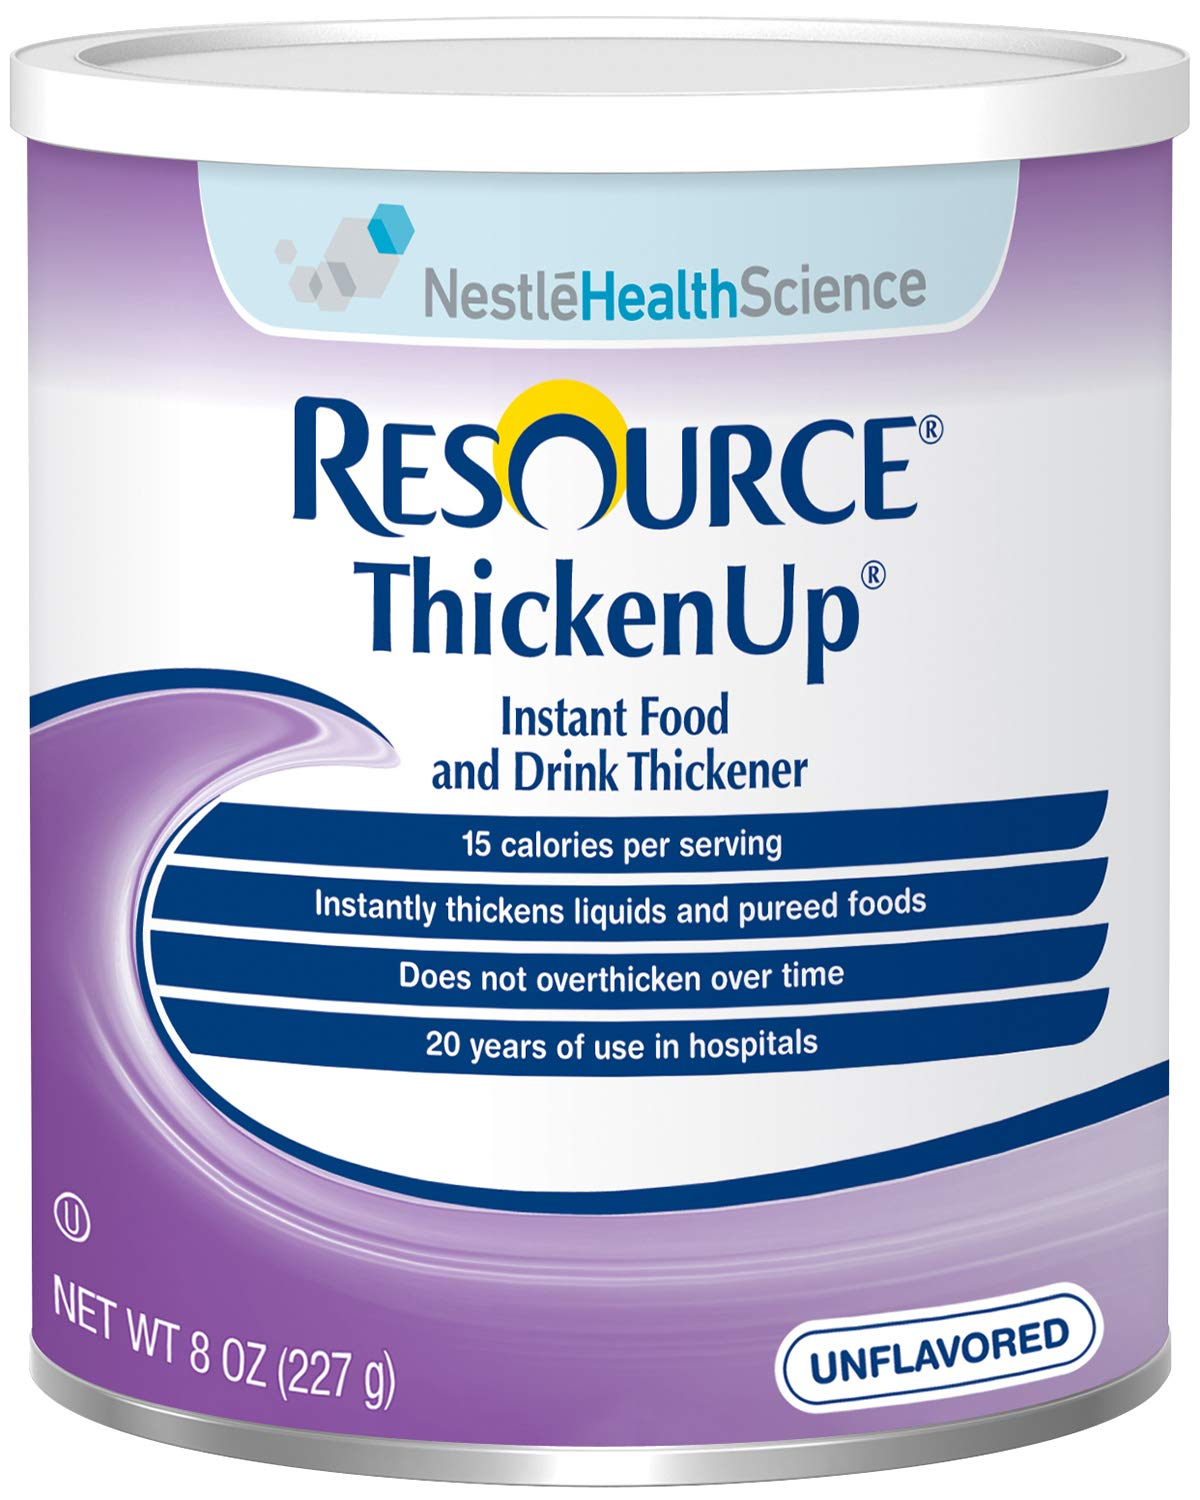 ReSource ThickenUp Instant Food & Drink Thickener, Unflavored, 8 OZ (Pack of 6)